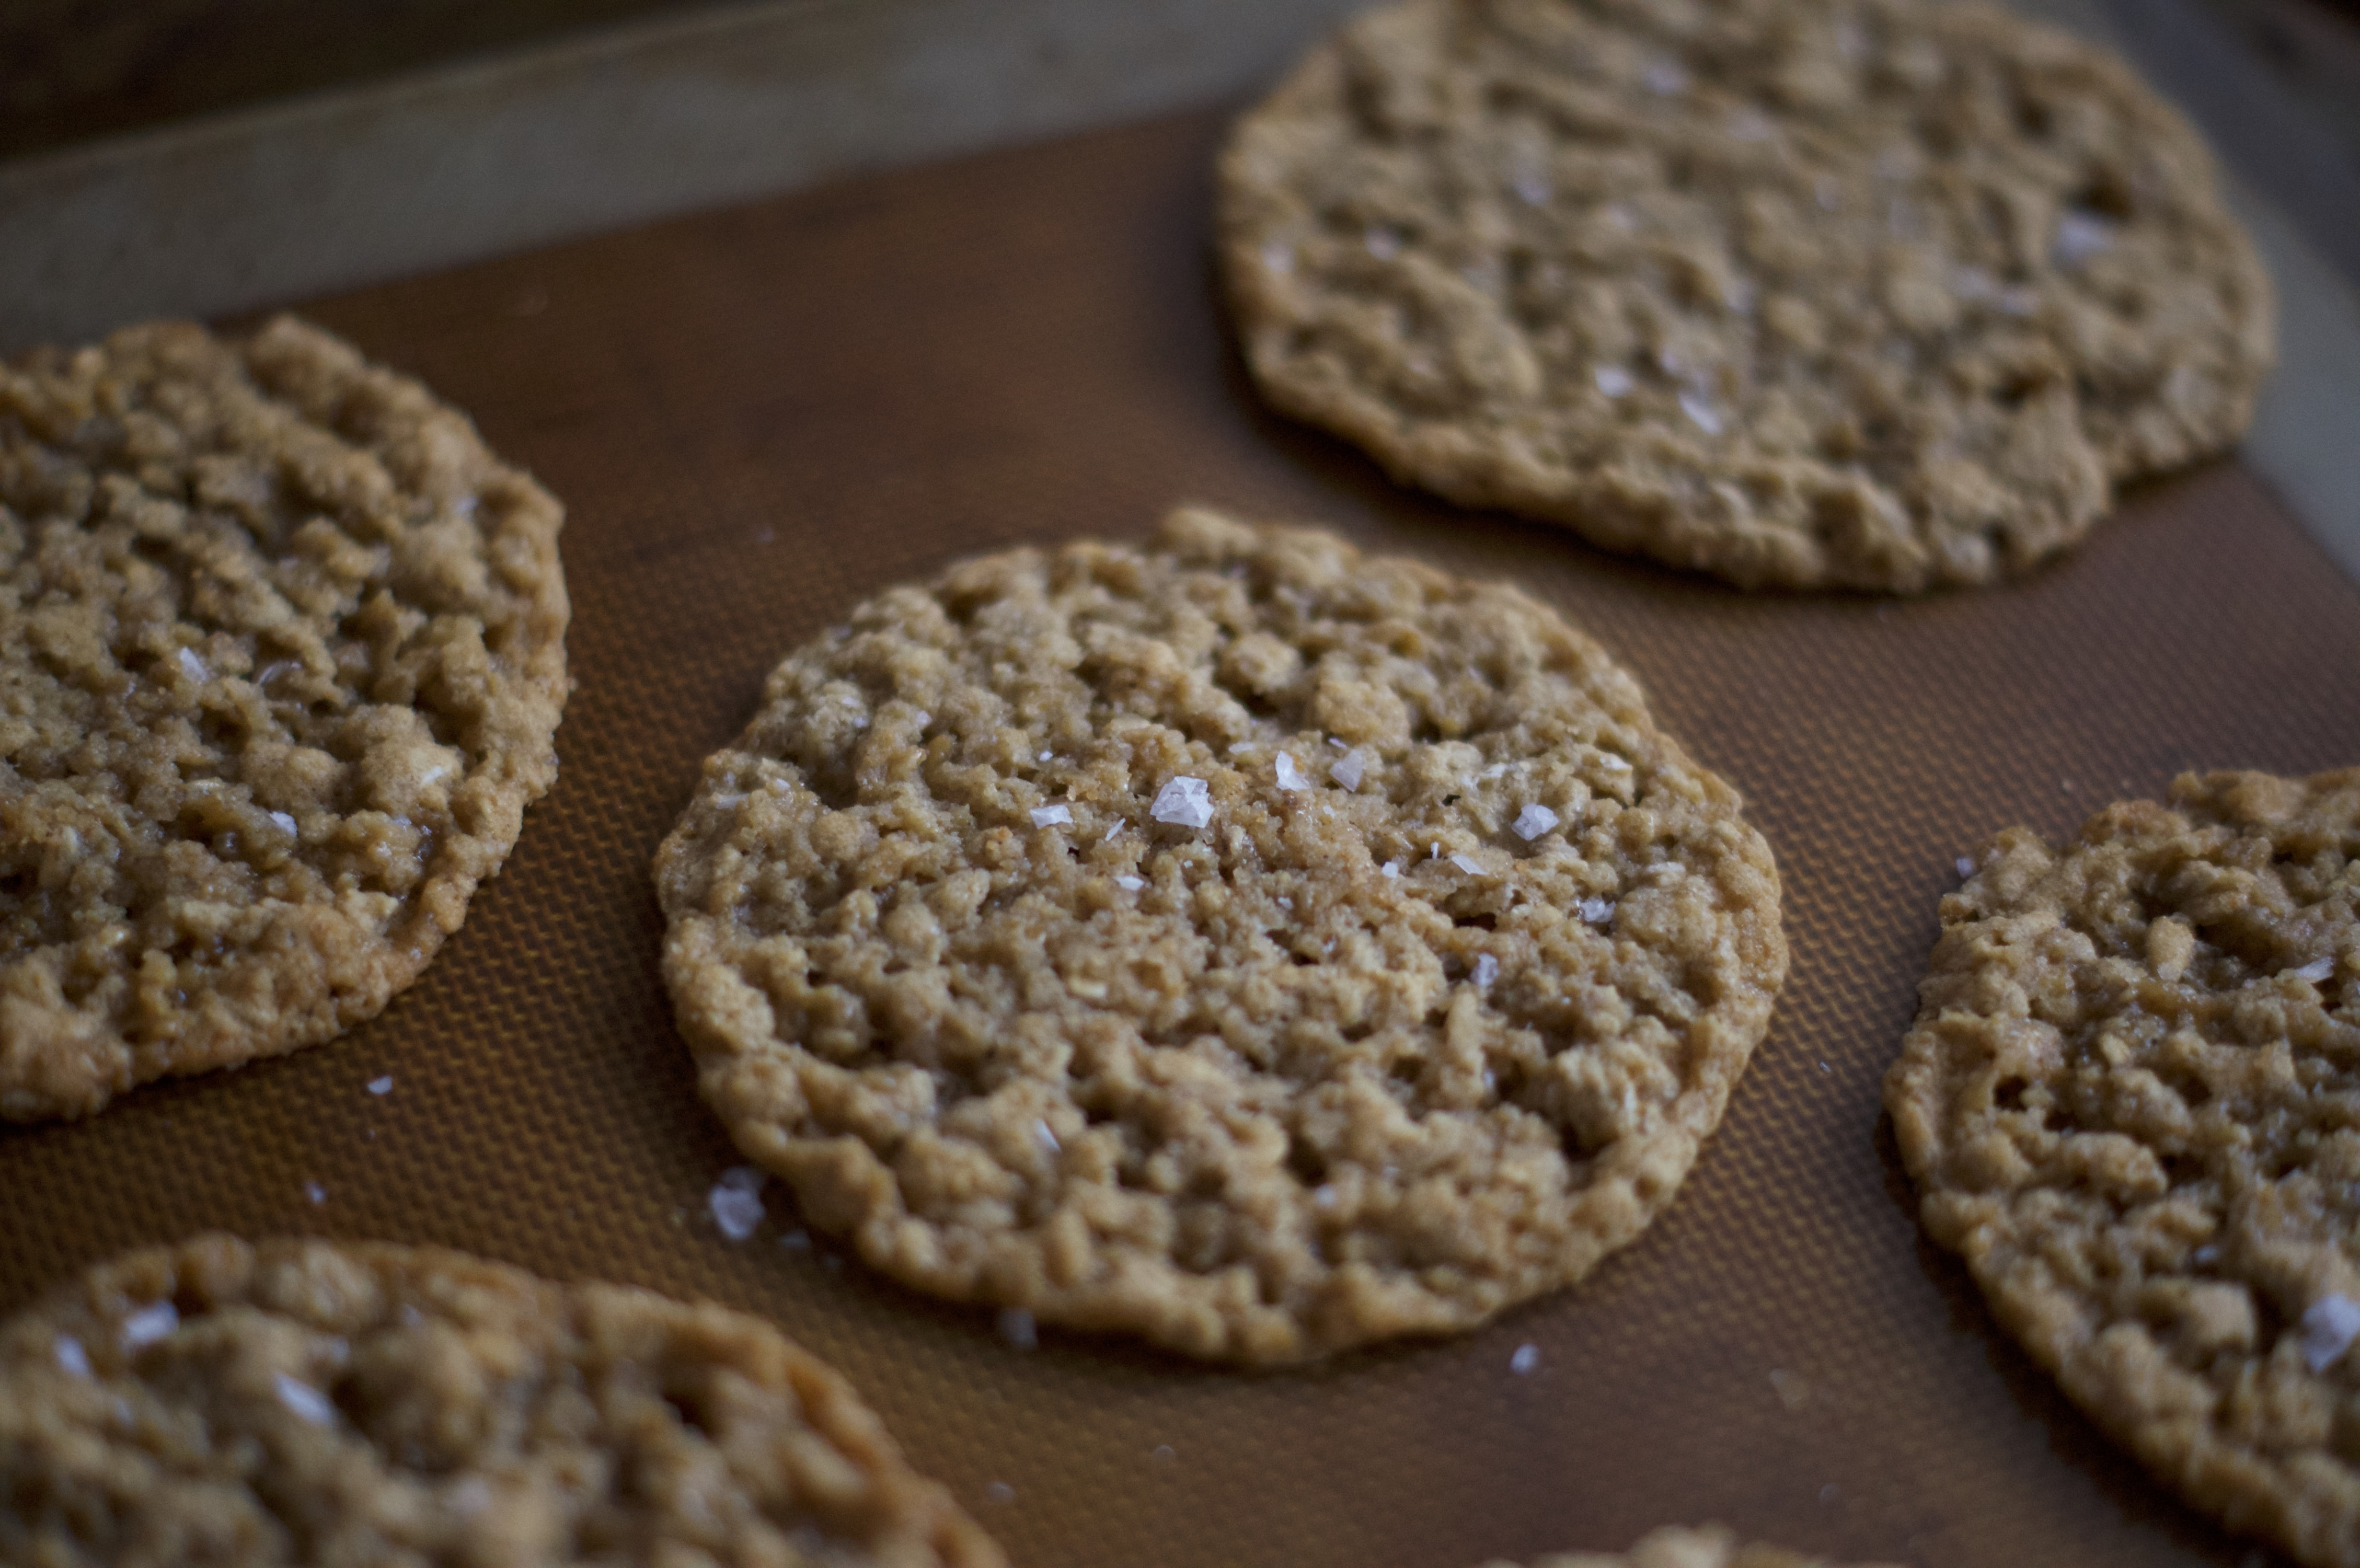 oatmeal lace cookies on a silicone baking mat